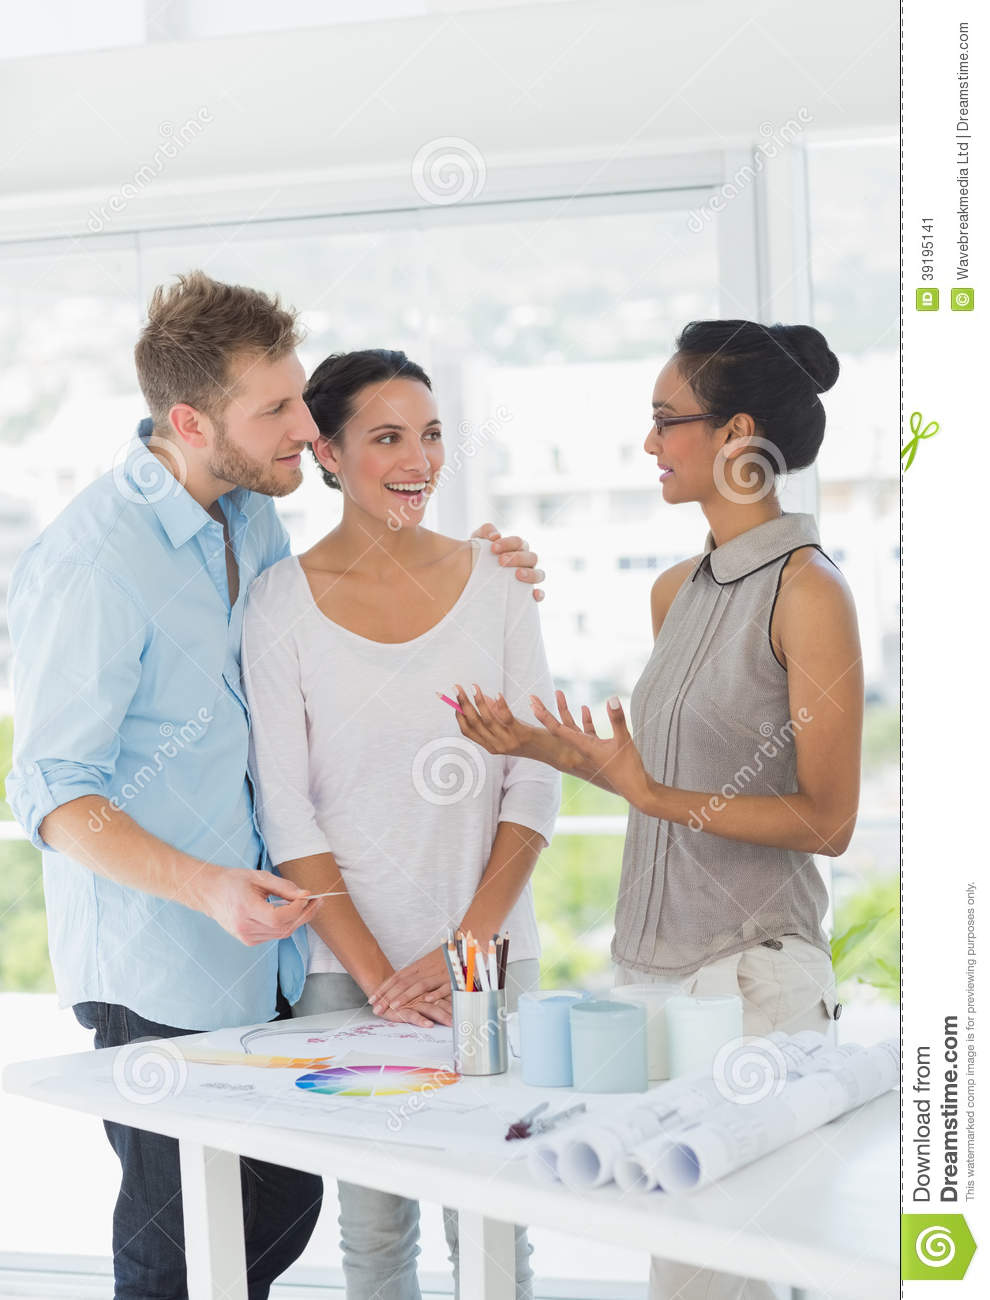 Interior designer speaking with happy clients stock image for How to find interior design clients